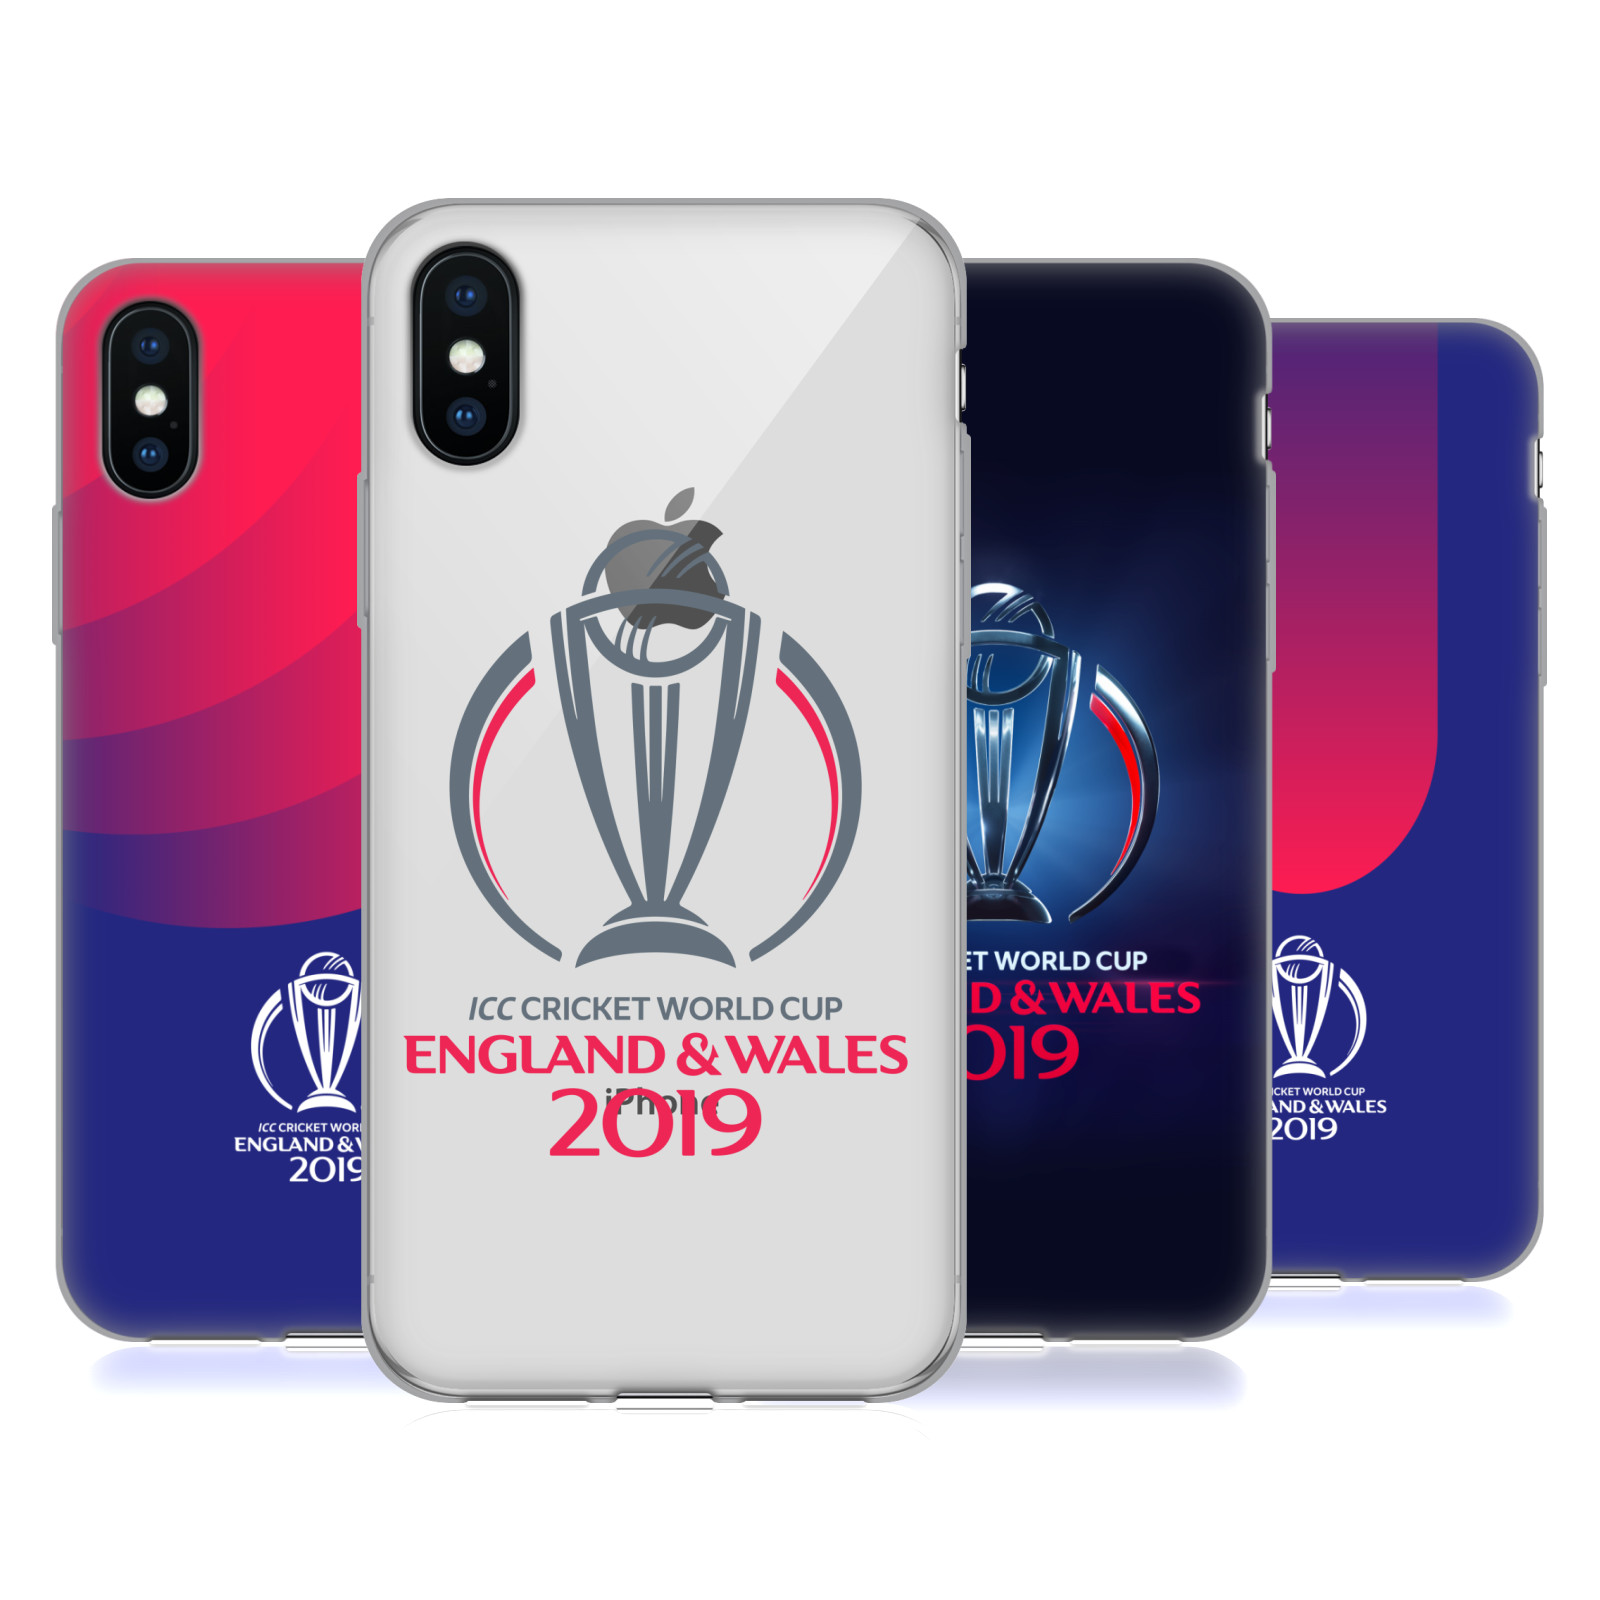 International Cricket Council CWC 2019 Cricket World Cup